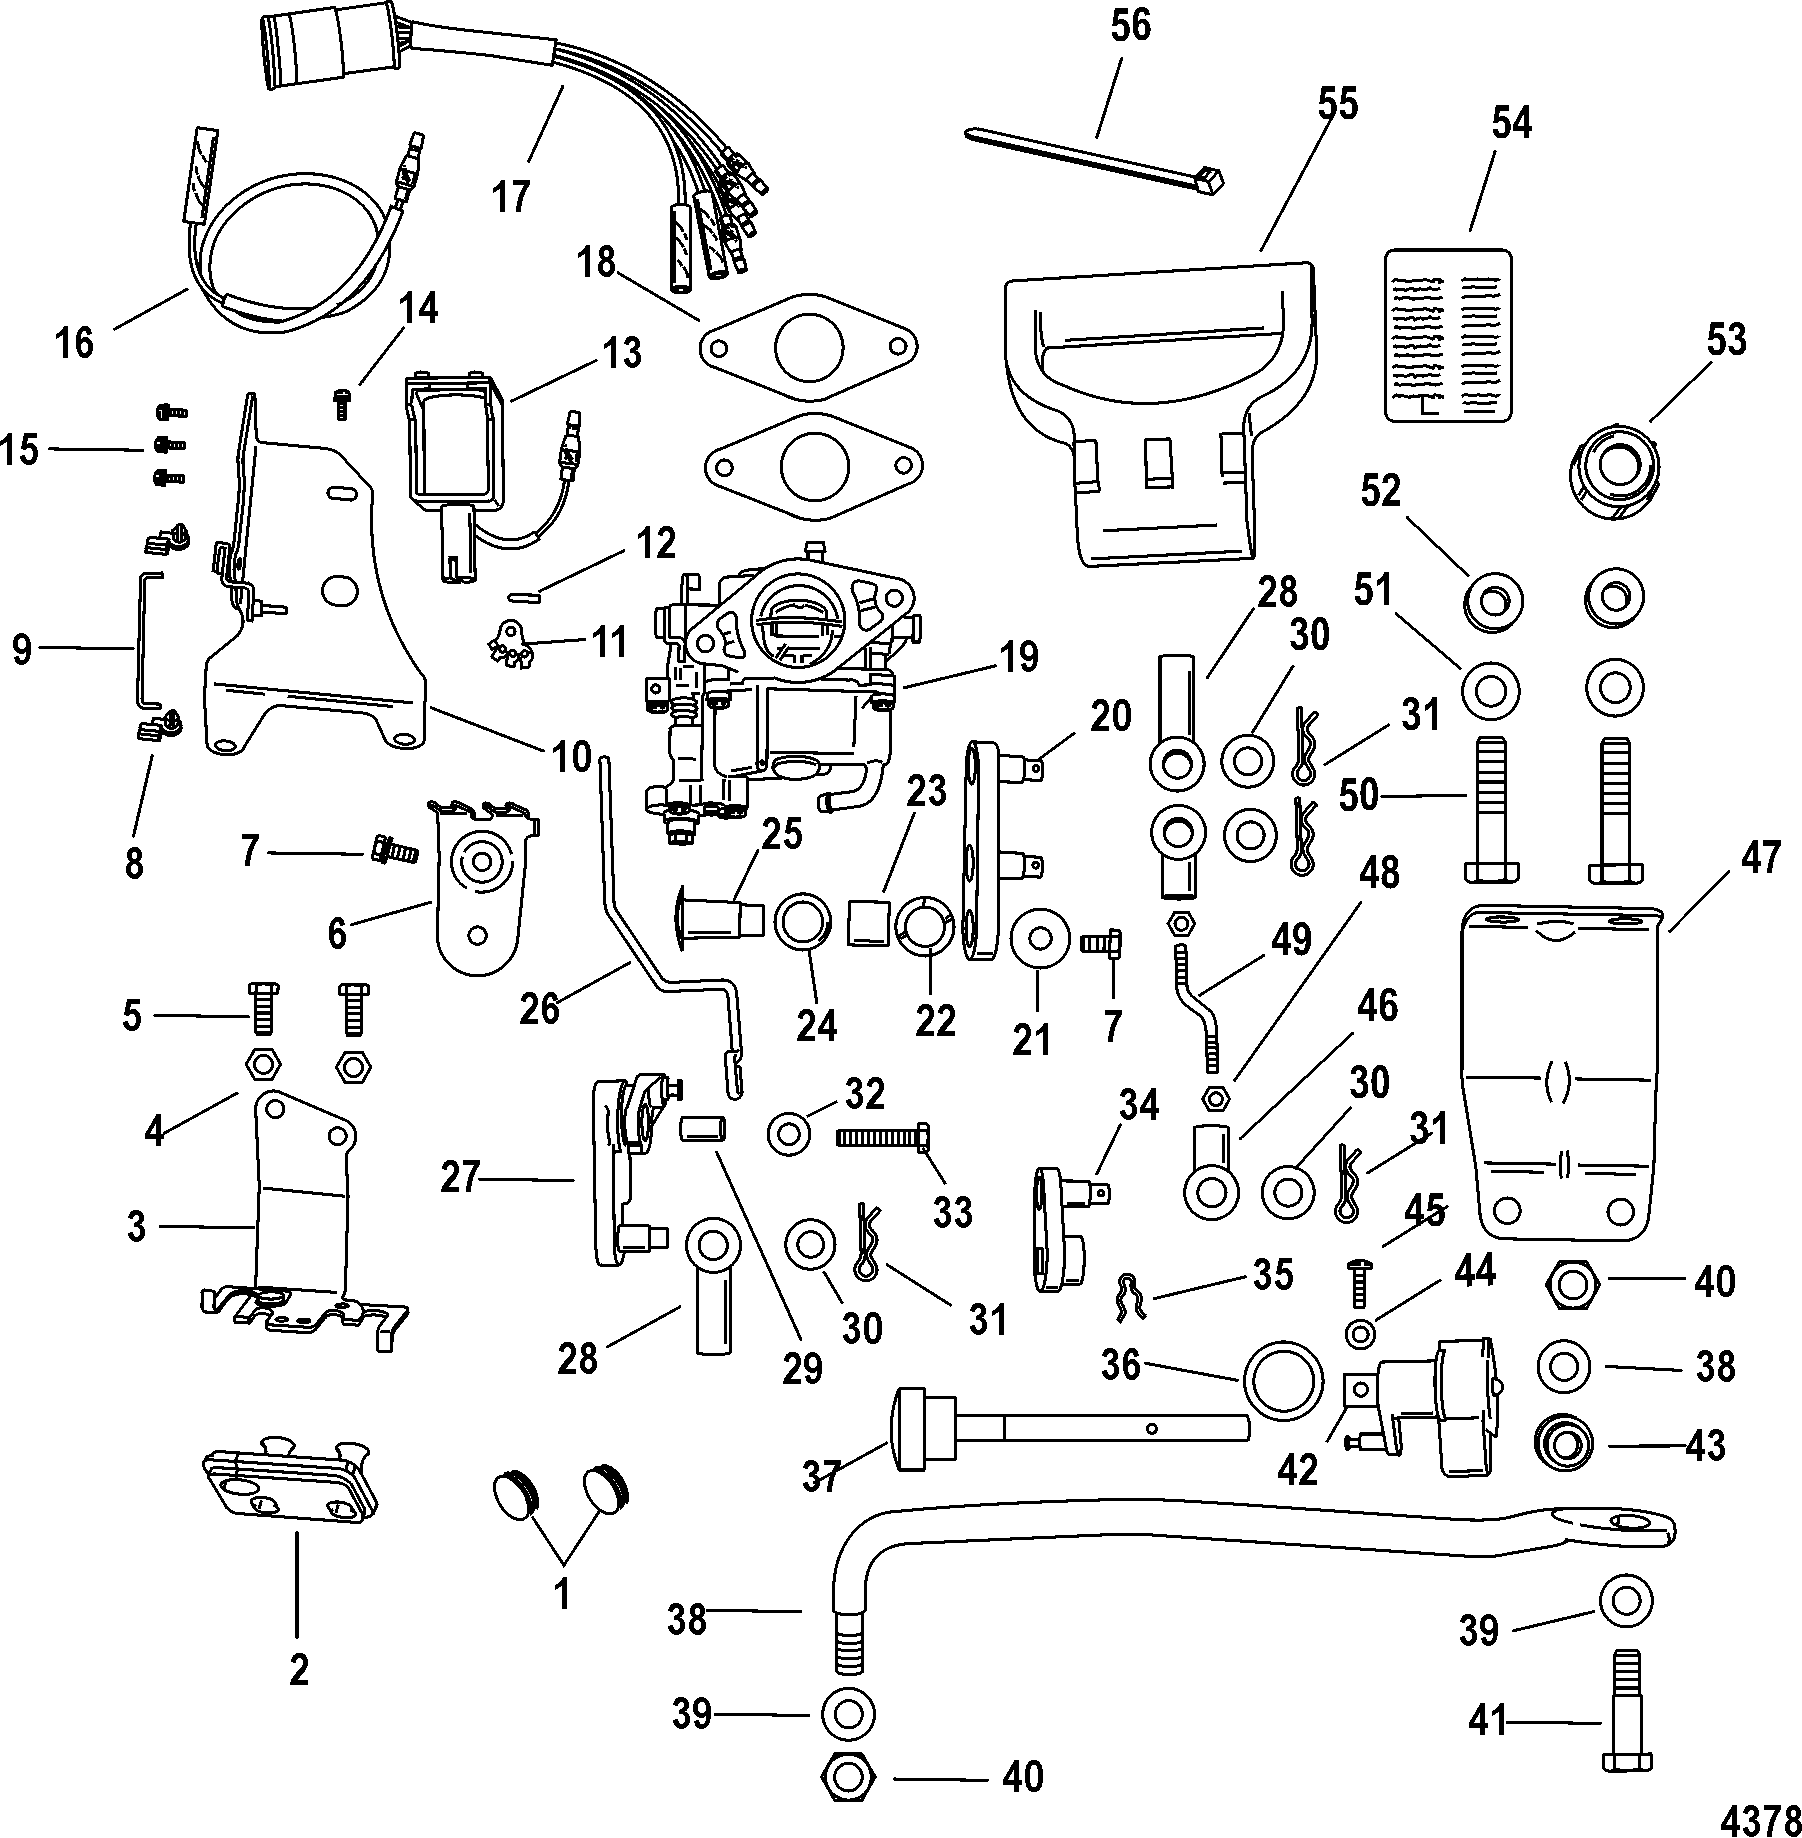 4378 conversion kit, 895284a01 for mariner mercury 8 9 9 209cc 4 stroke mercury 9.9 4 stroke wiring diagram at panicattacktreatment.co